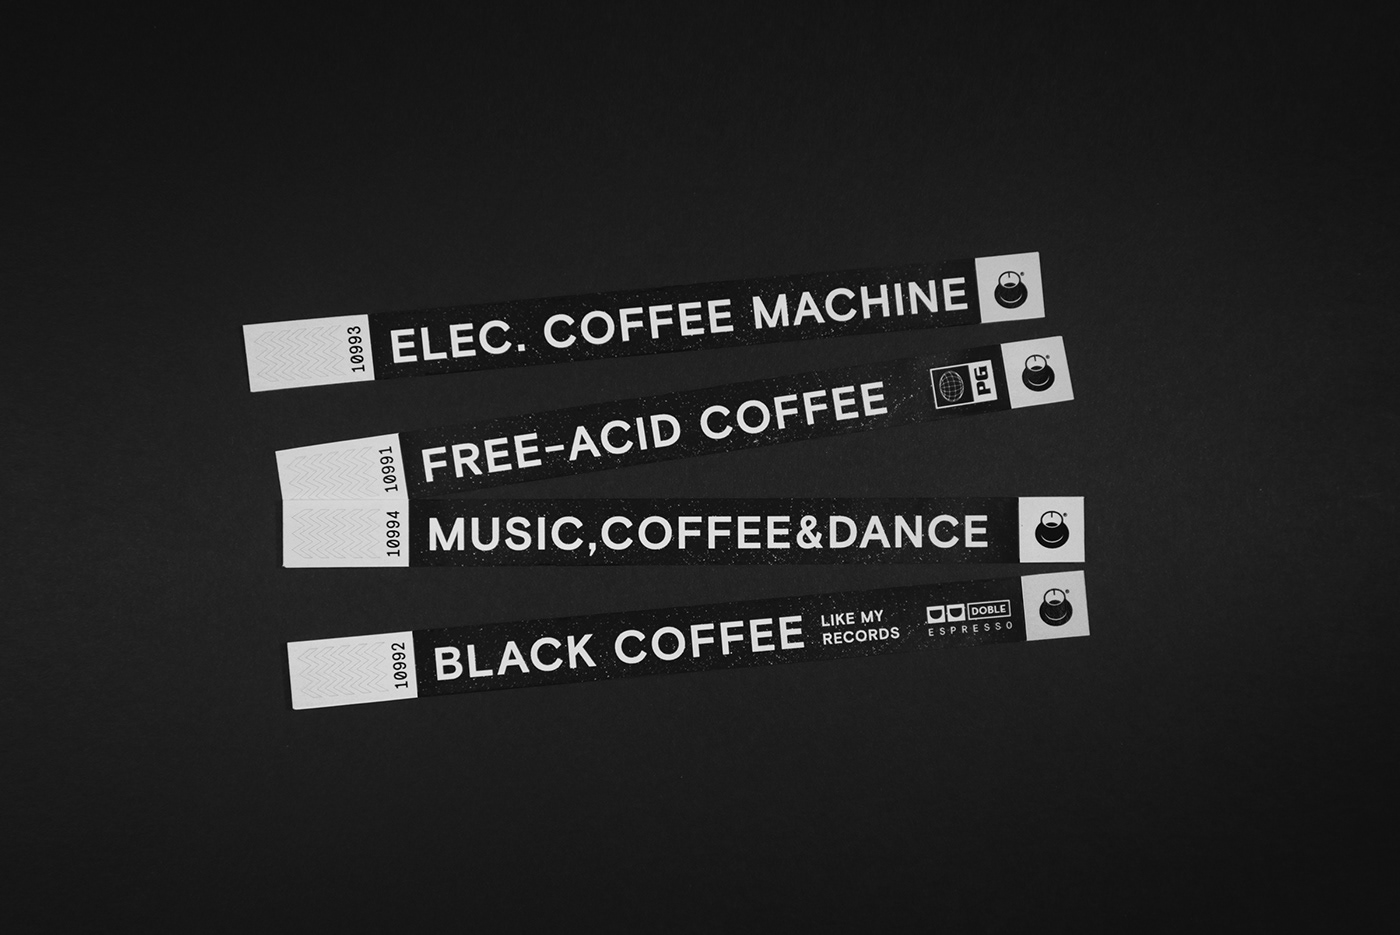 Coffee bar electronic music cafe music club black menu synthesizer cocktails